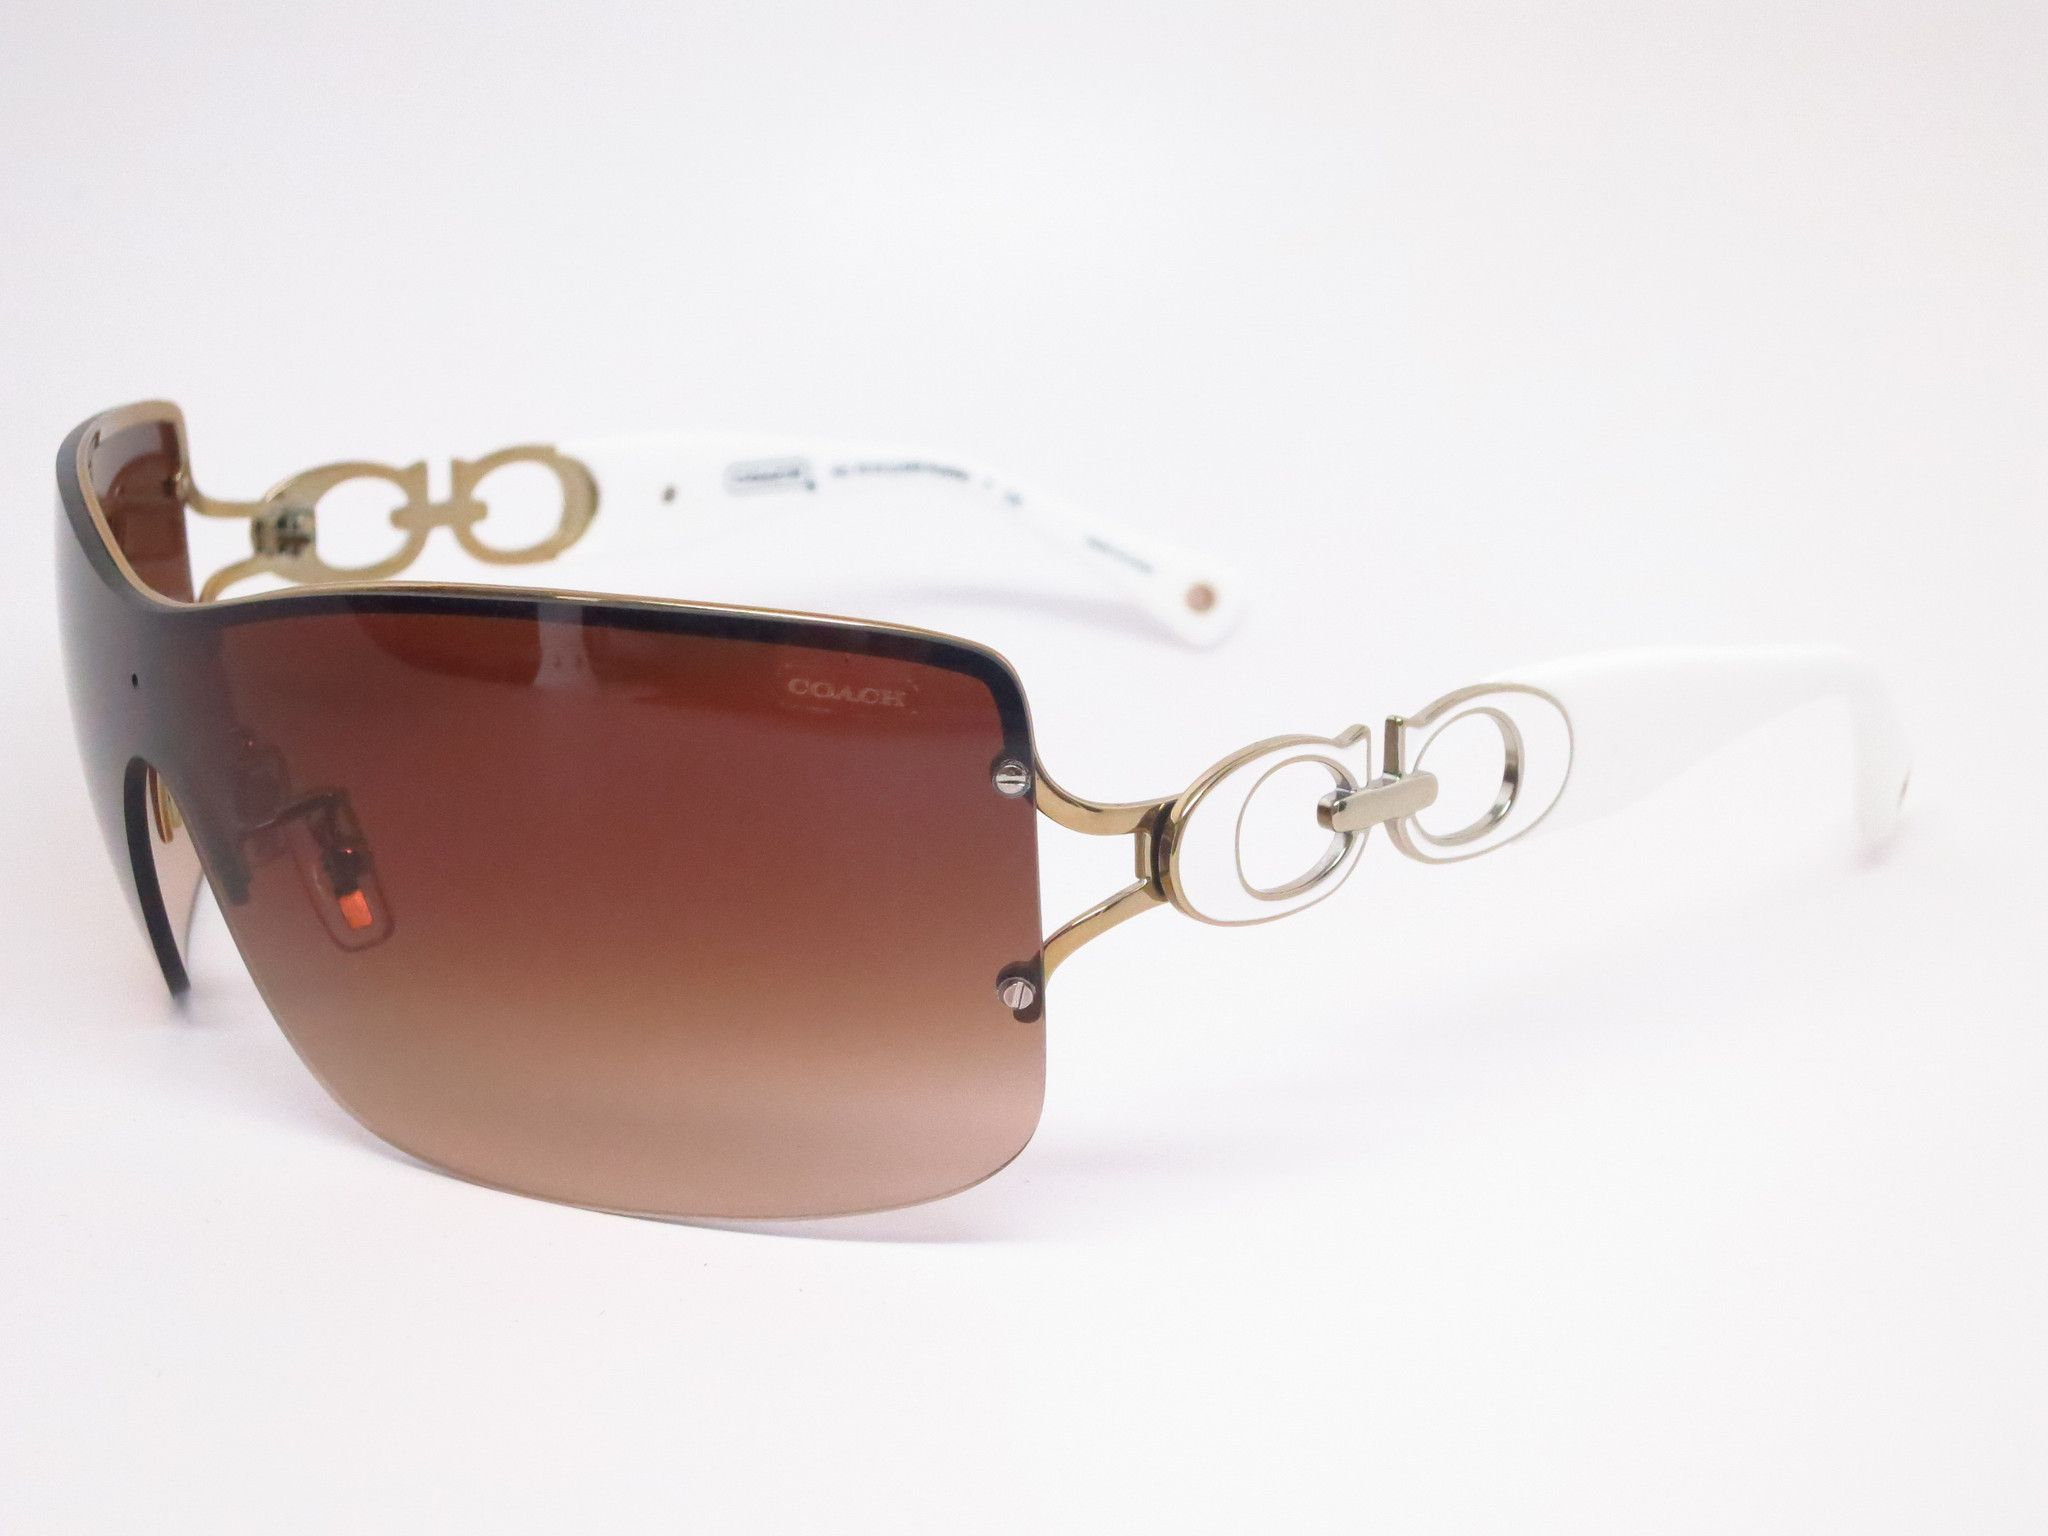 2f5c73bf573 Coach Noelle Product Details Model Number   HC 7018 Model Name   Noelle -  Color Code   9118 13 Frame Color   Gold White Lens Color   Dark Brown  Gradient ...